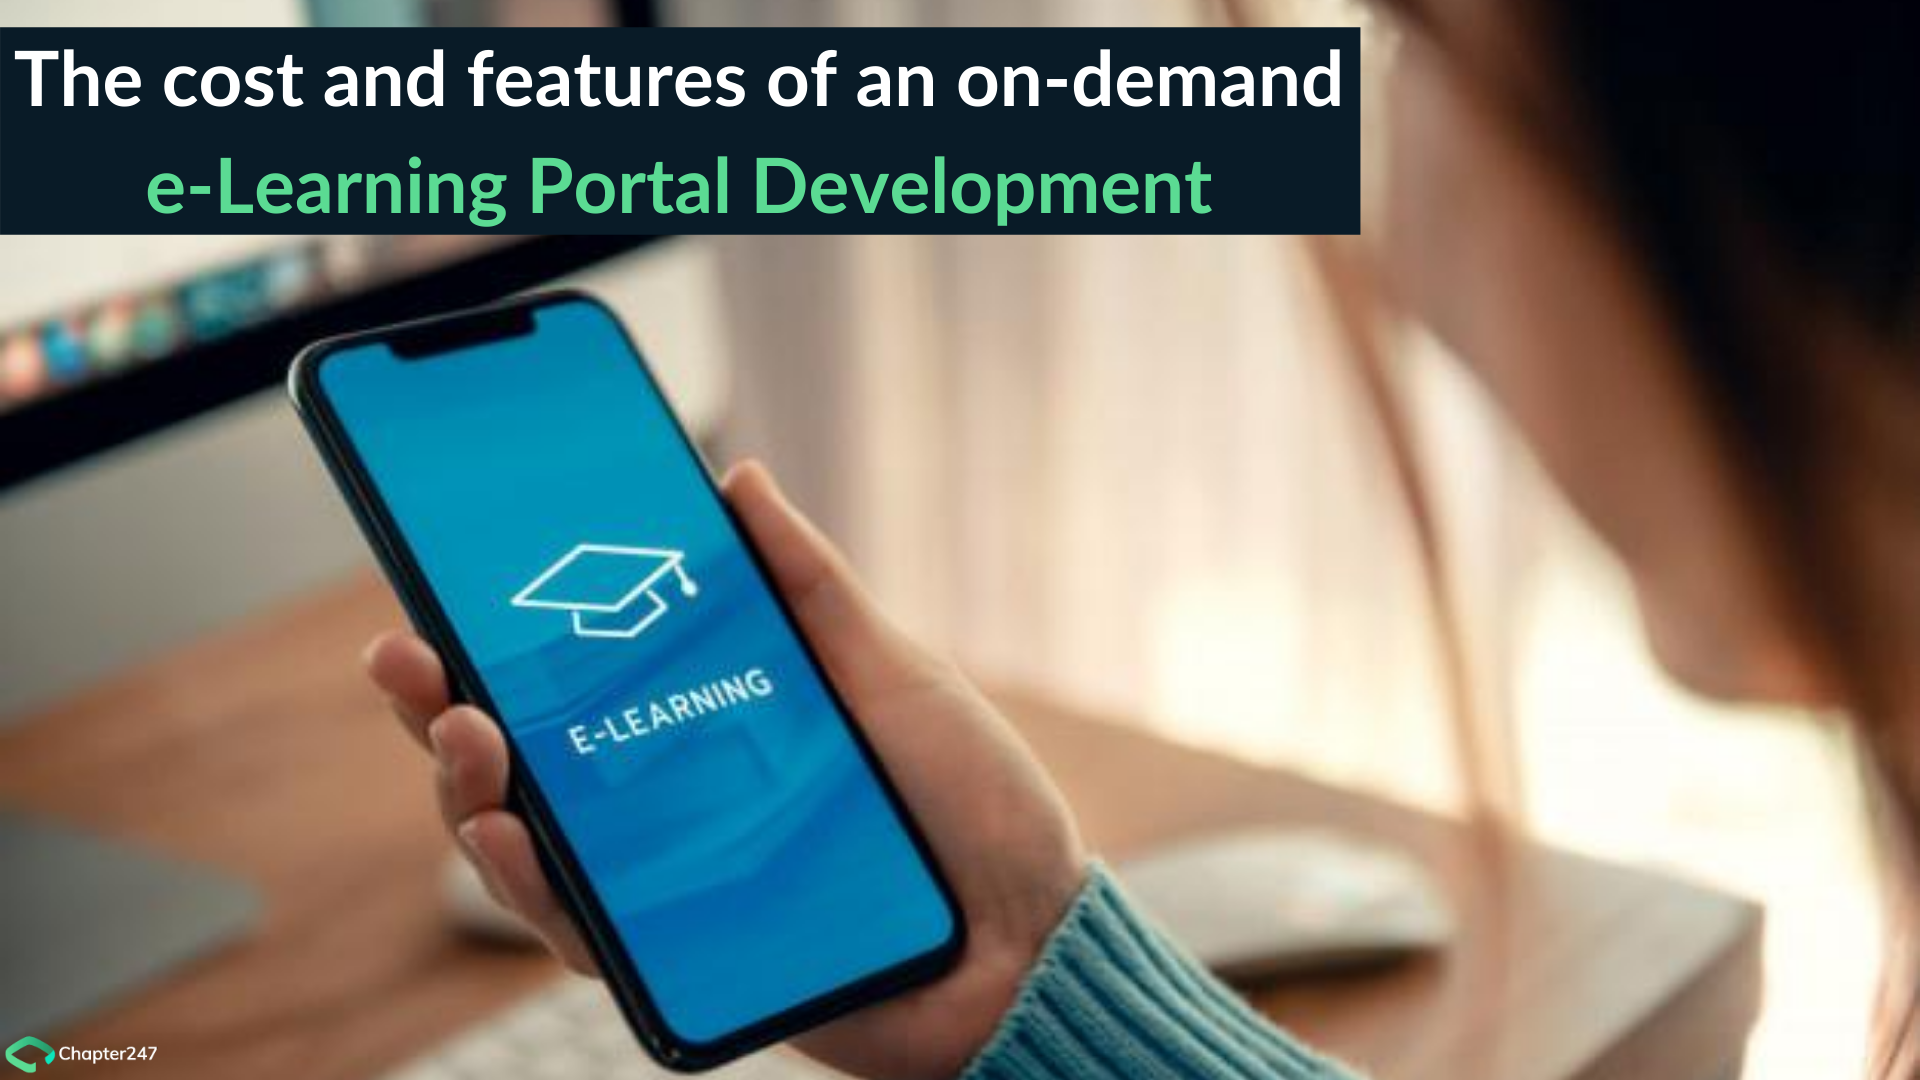 The Cost And Features Of An On Demand E Learning Portal Development By Chapter247 Infotech Aug 2020 Medium